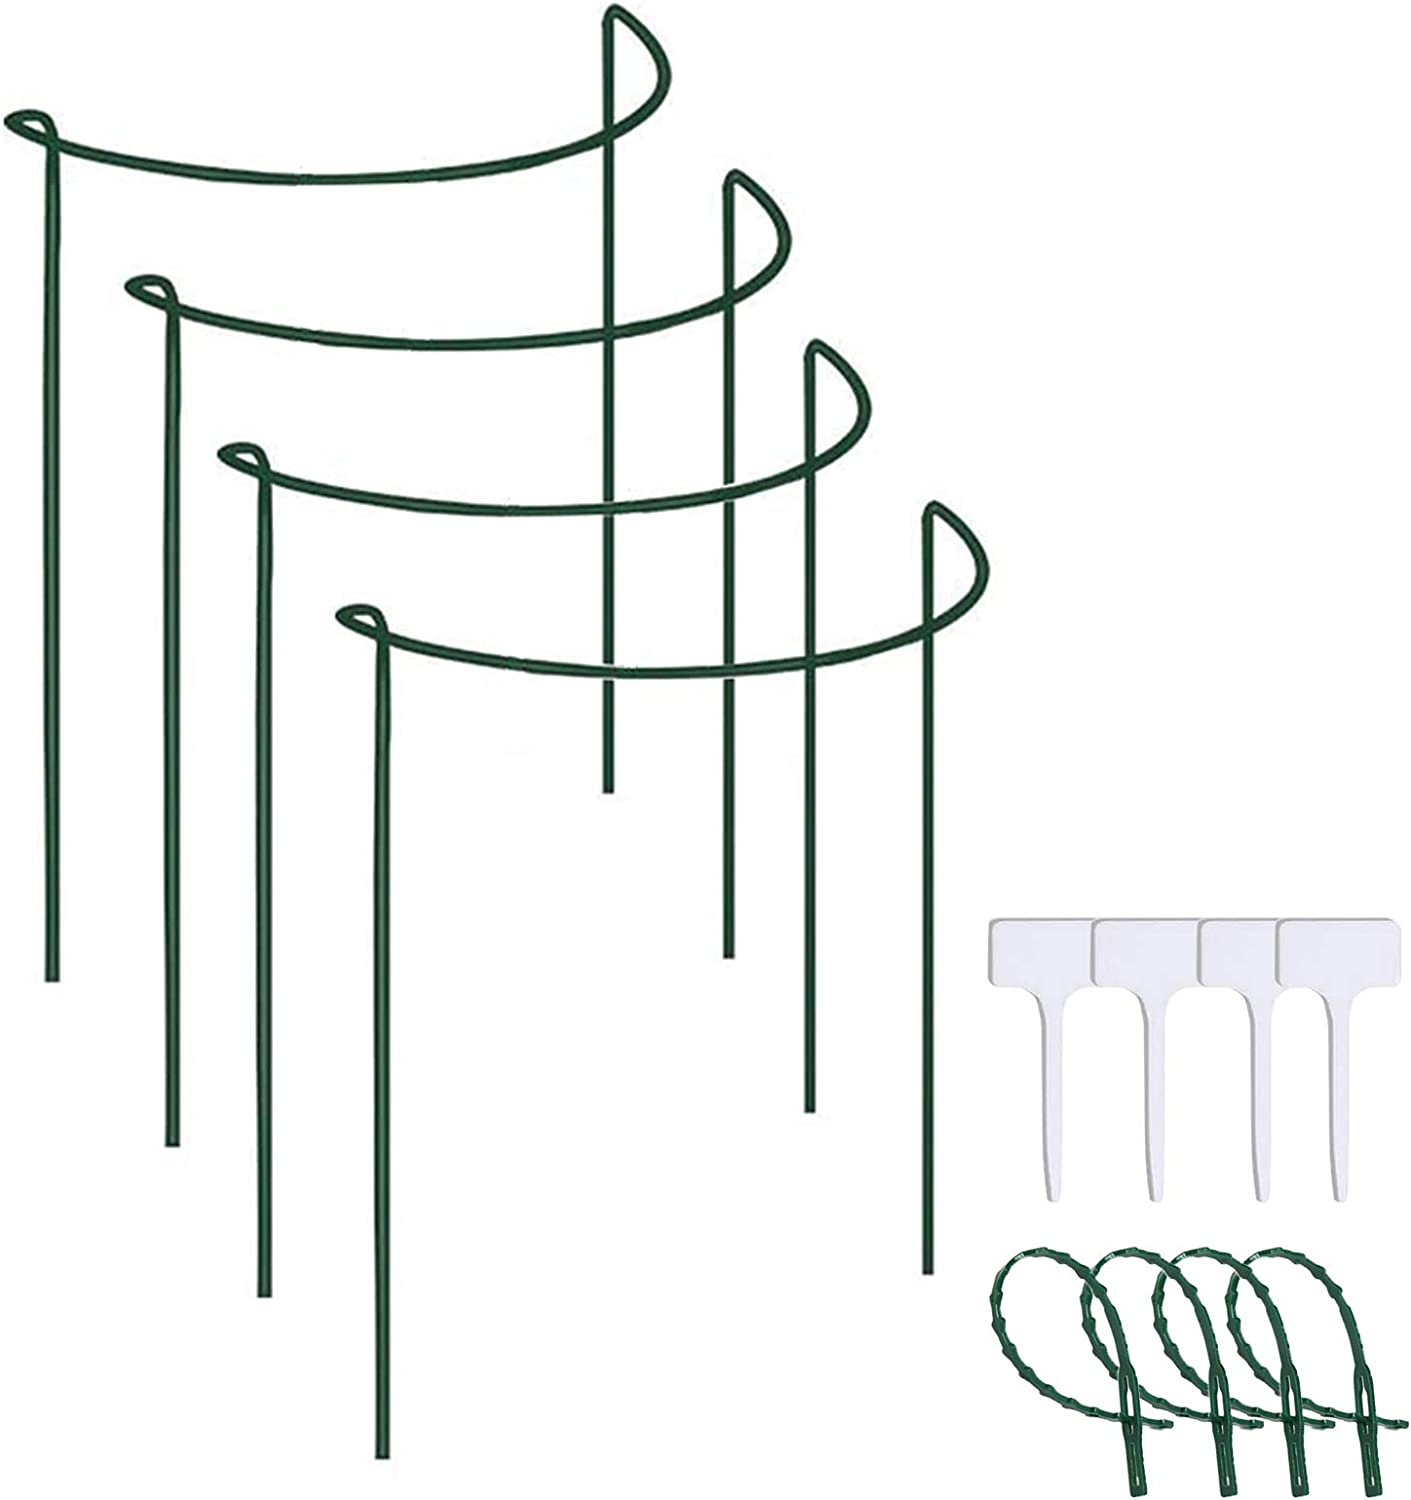 "Fuhakang 27.5"" 4Pcs Plant Support Stake Half Round Ring Metal Stainless Steel Garden Border Path Supports Plant Support Ring Cage for Roses,Hydrangeas,Flowers Vine,Tomato"